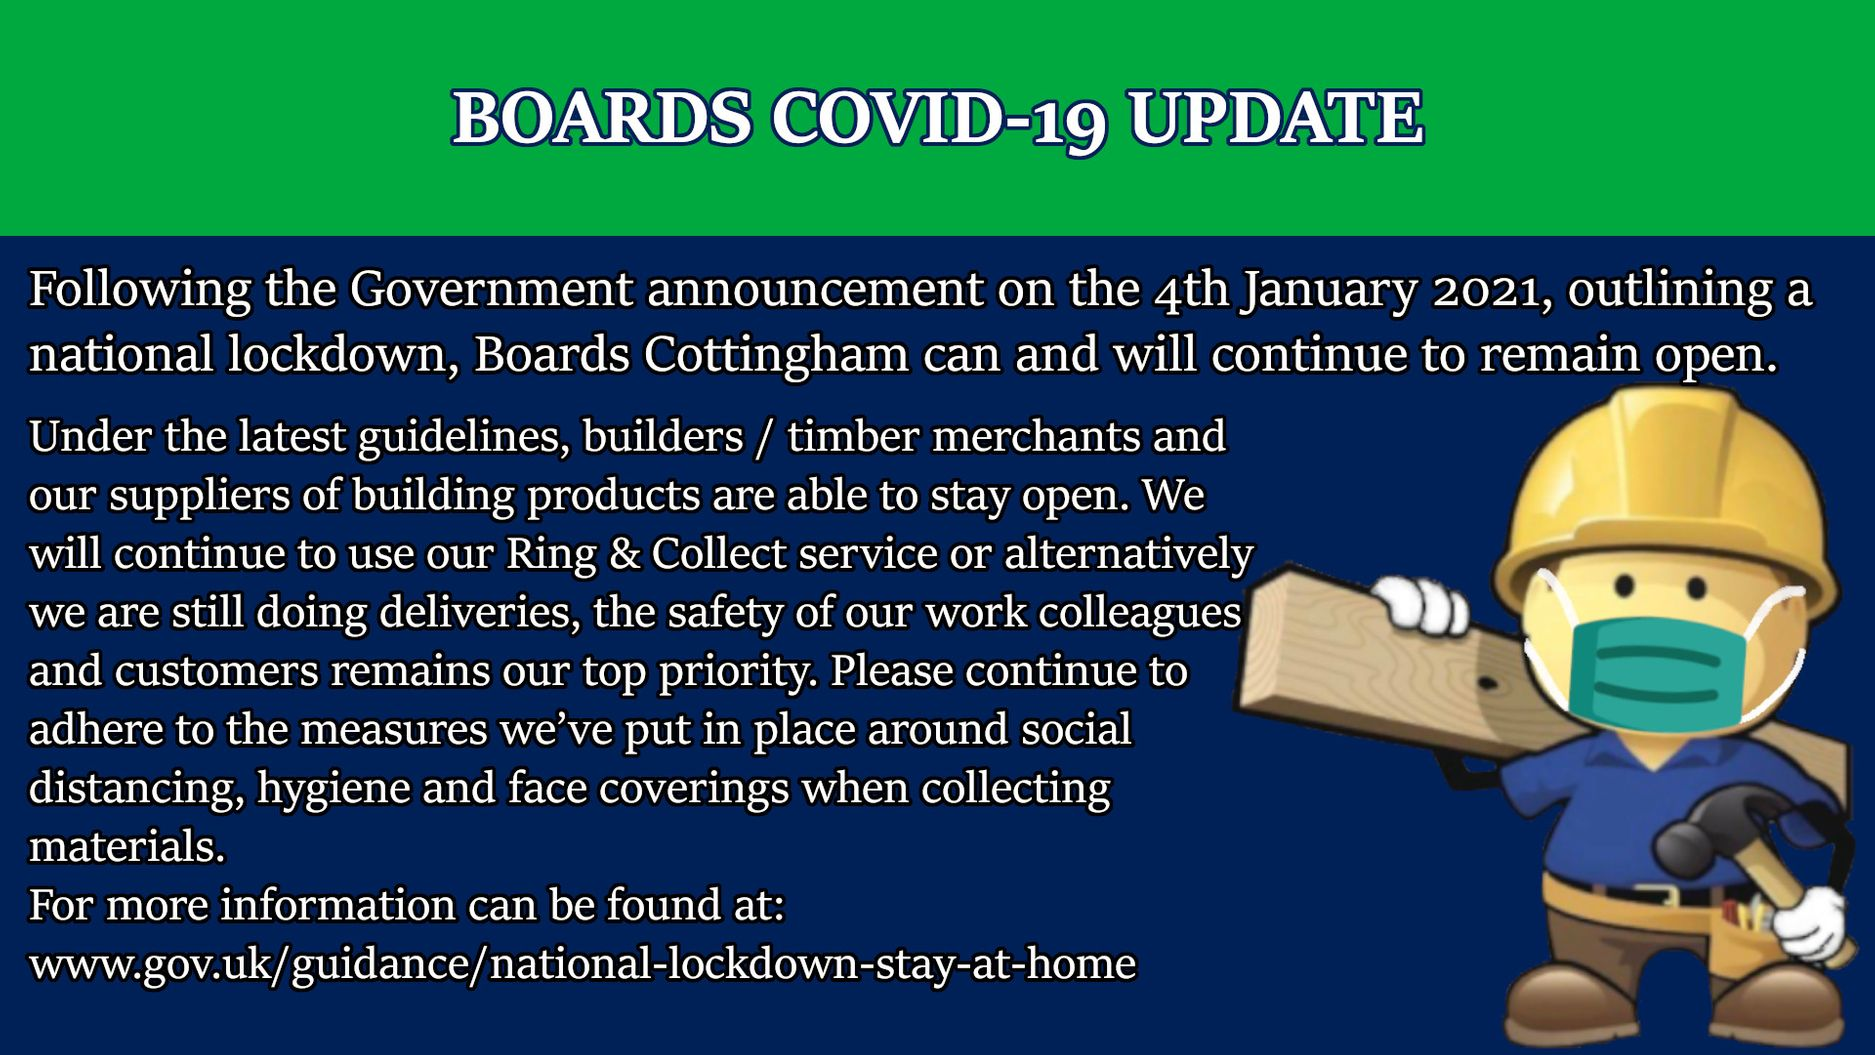 Boards COVID-19 Update